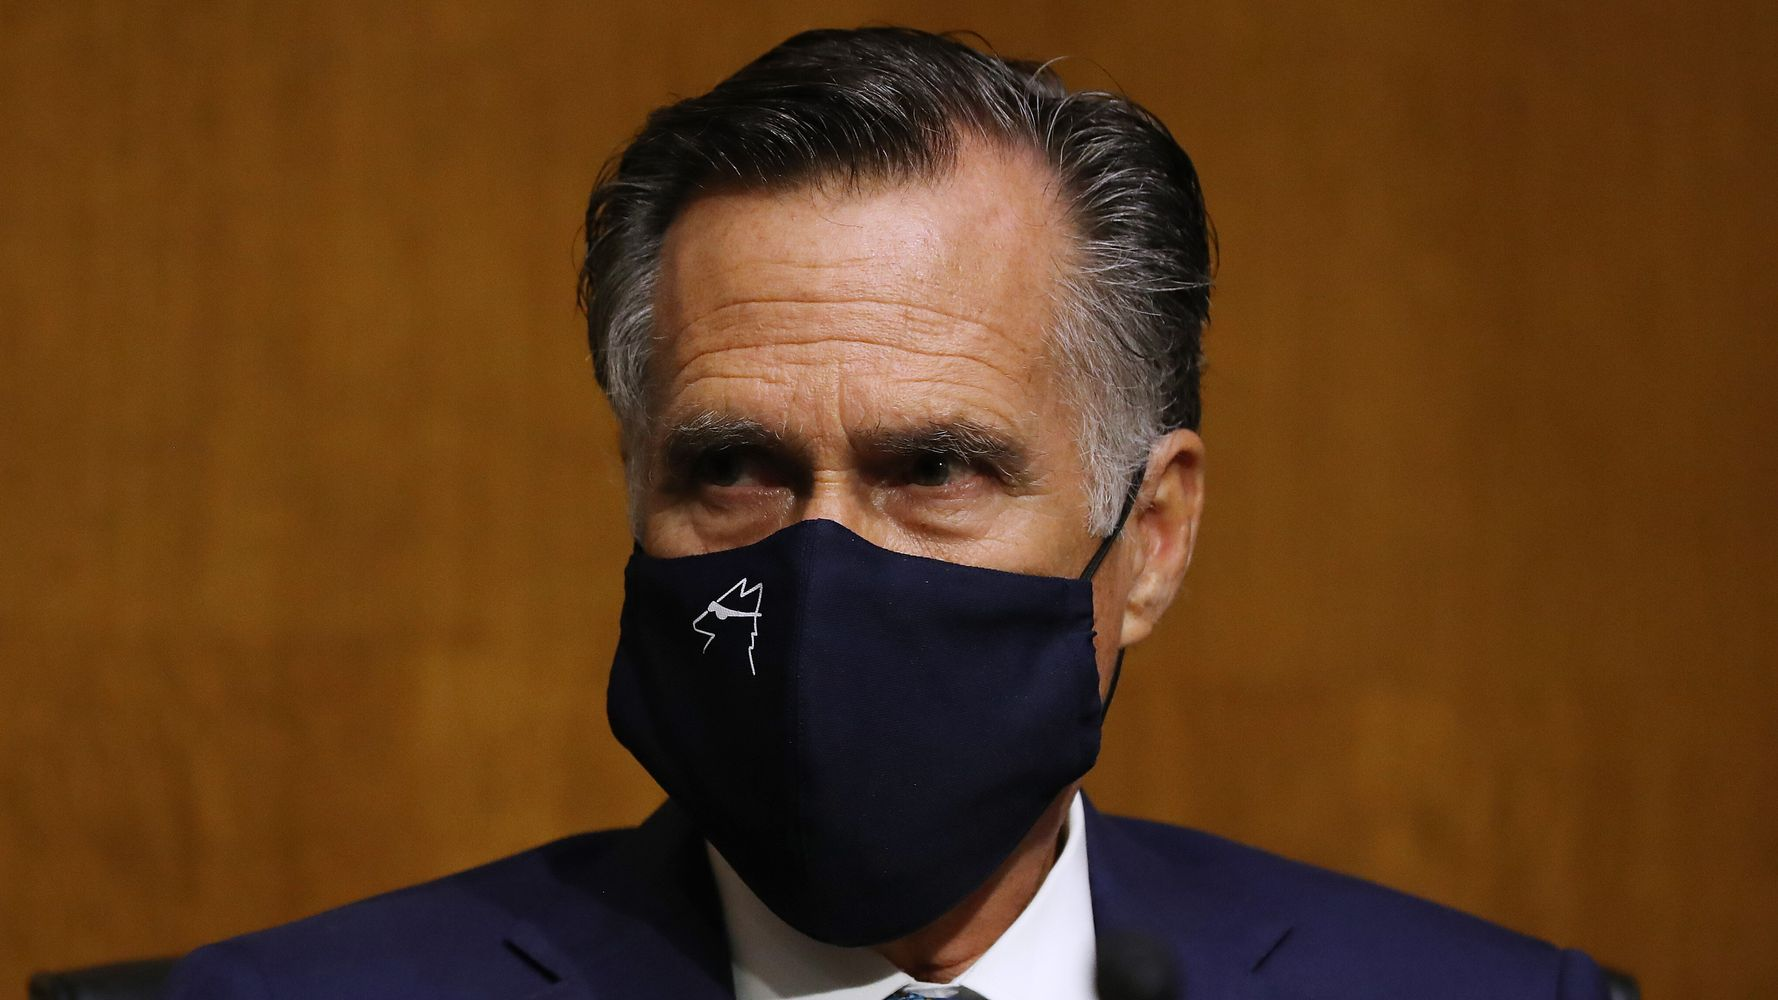 Mitt Romney Doesn't Have A Problem With Mail-In Ballots - PoliticTalks.com